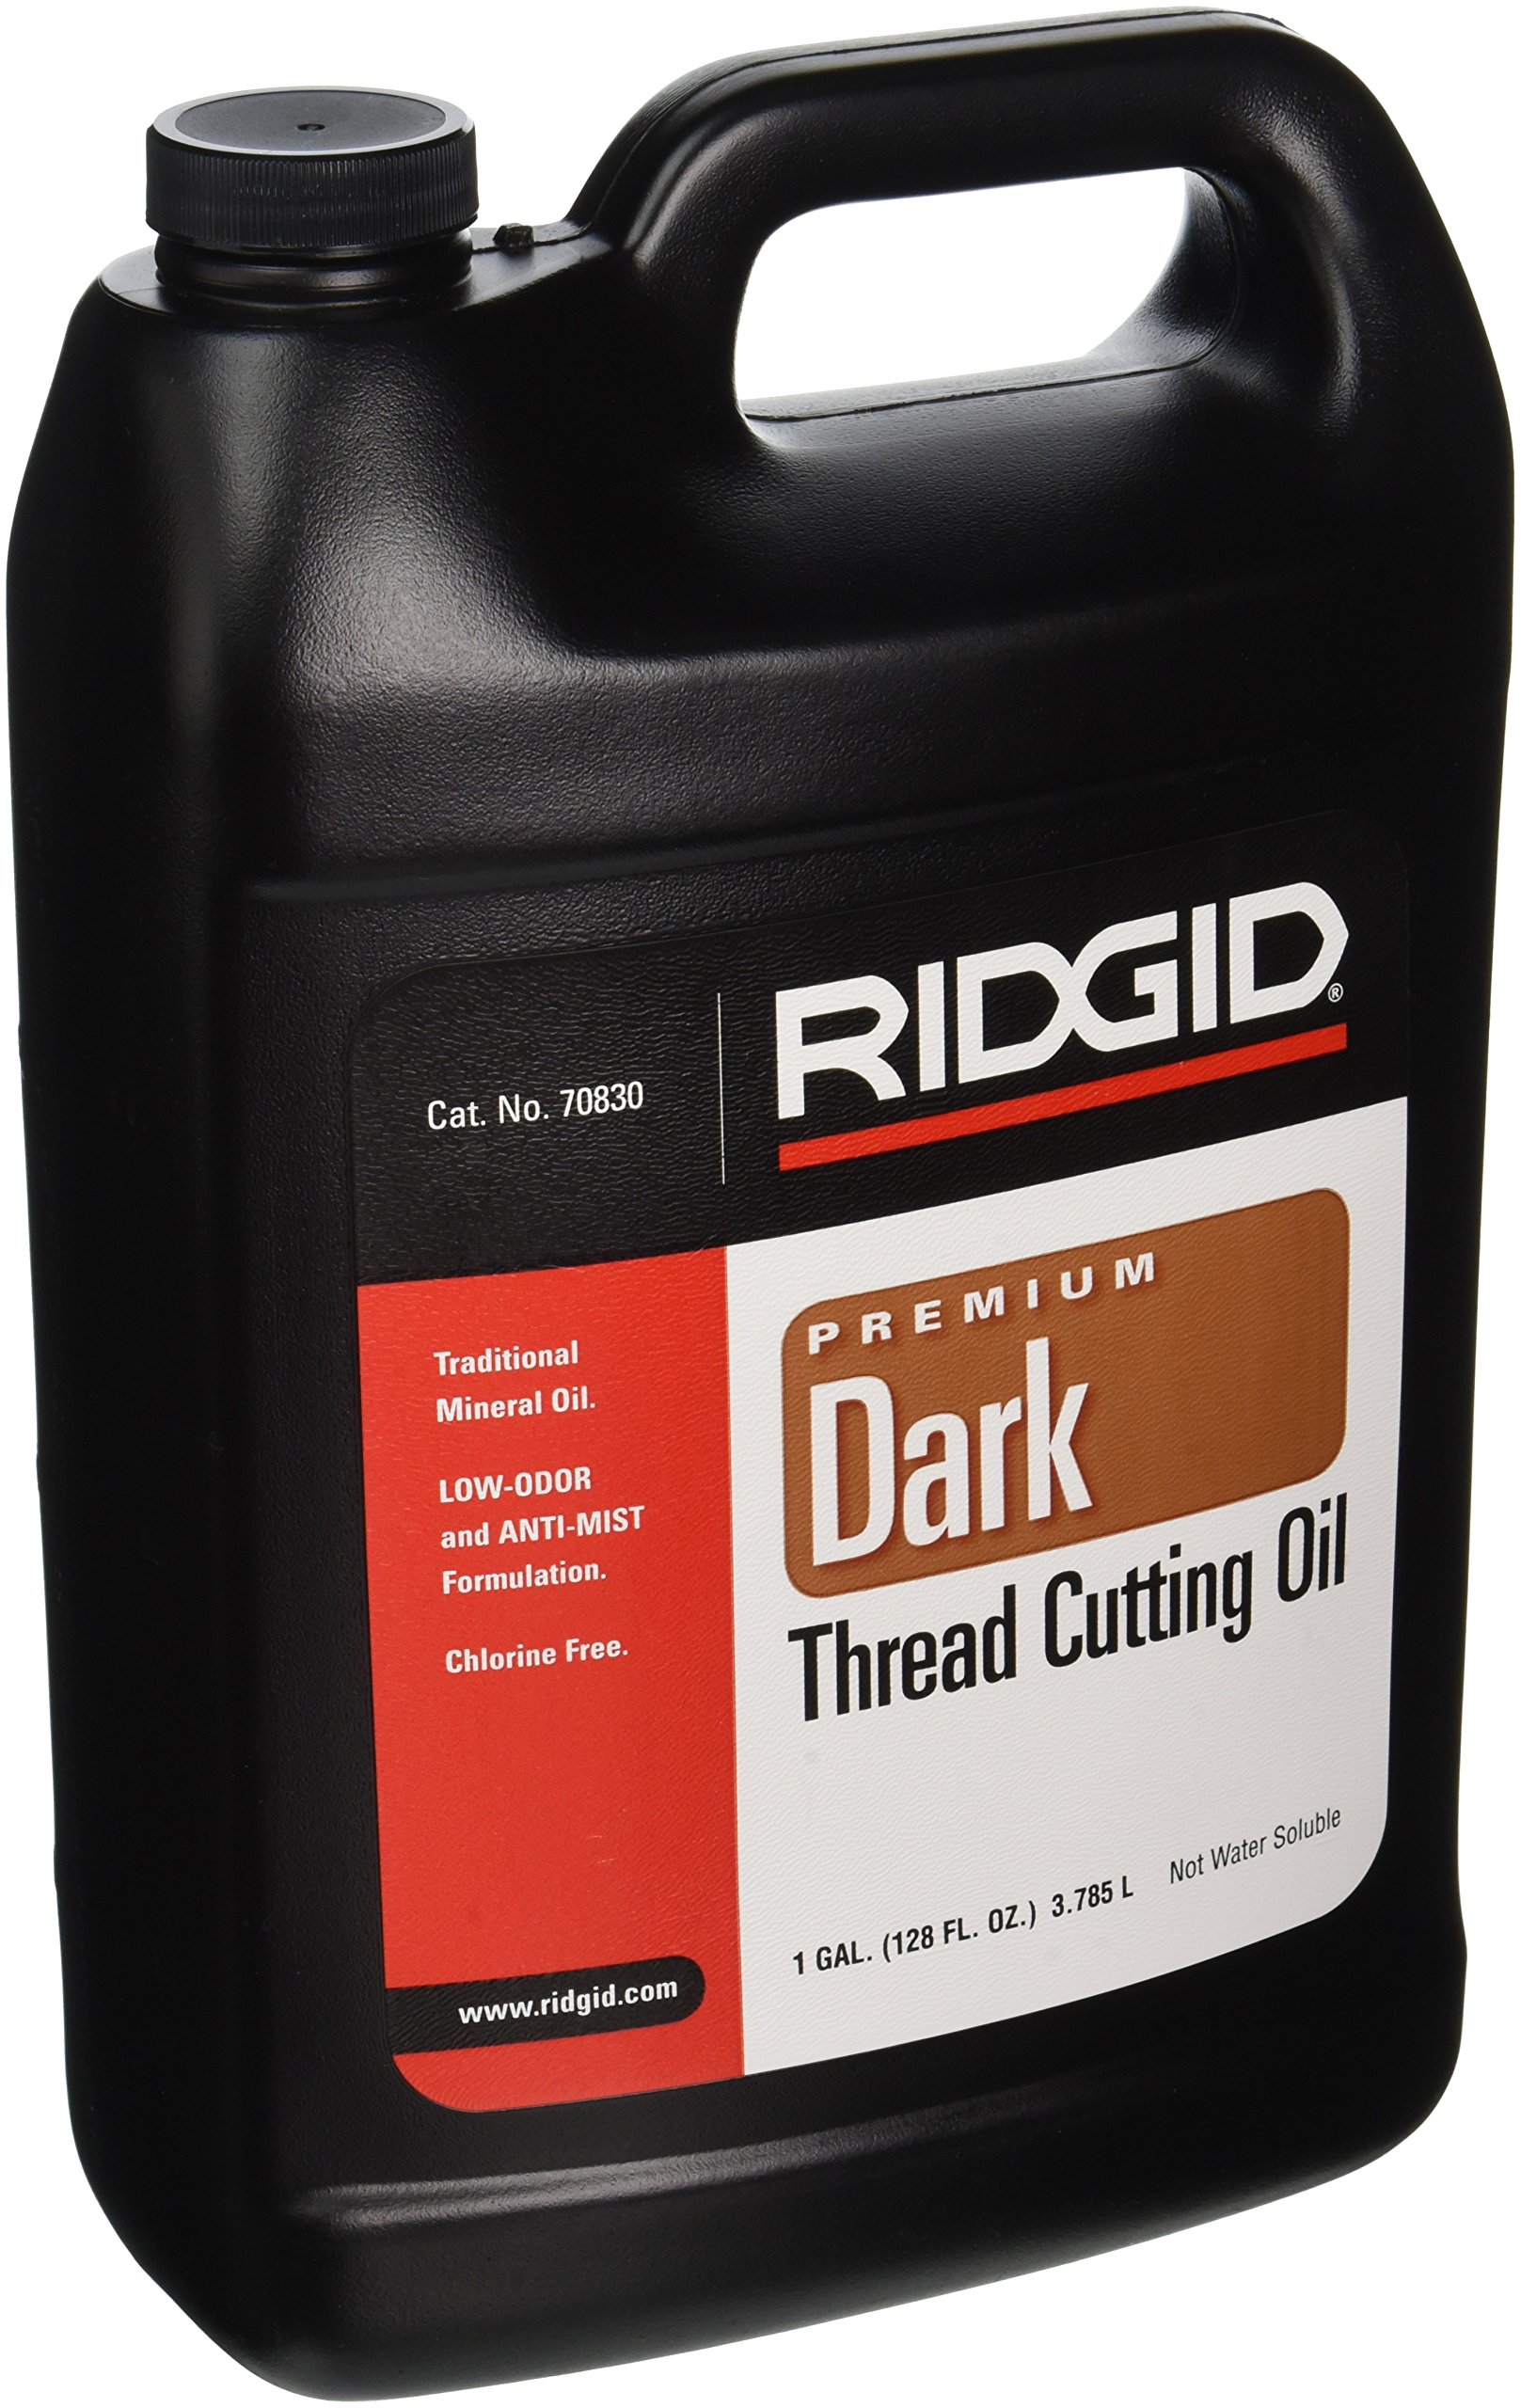 RIDGID 70830 Dark Thread Cutting Oil, 1 Gallon of Dark Pipe Threading Oil